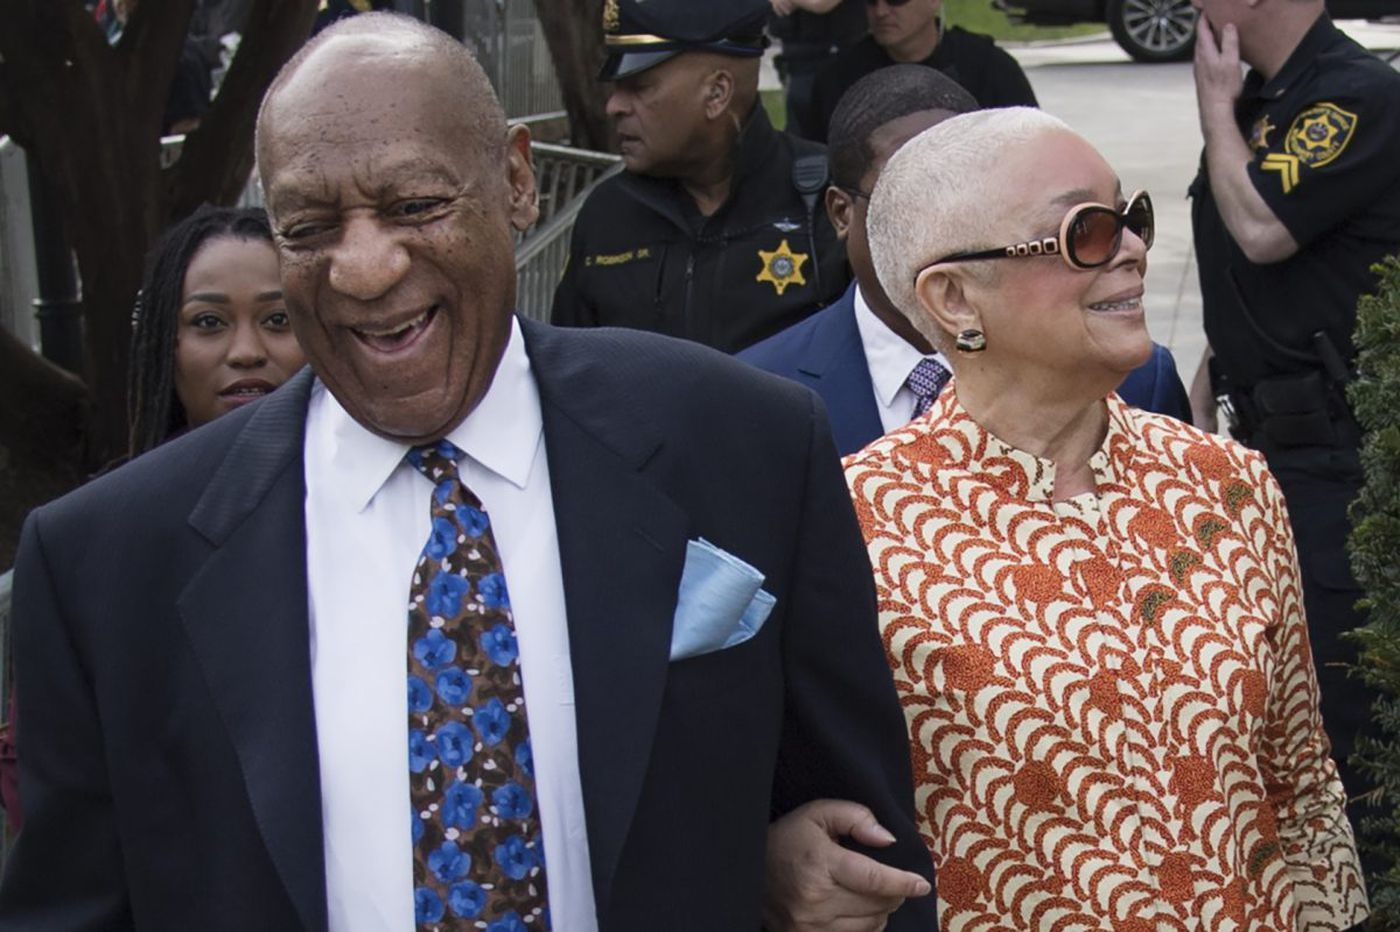 Camille Cosby: 'This is mob justice, not real justice'